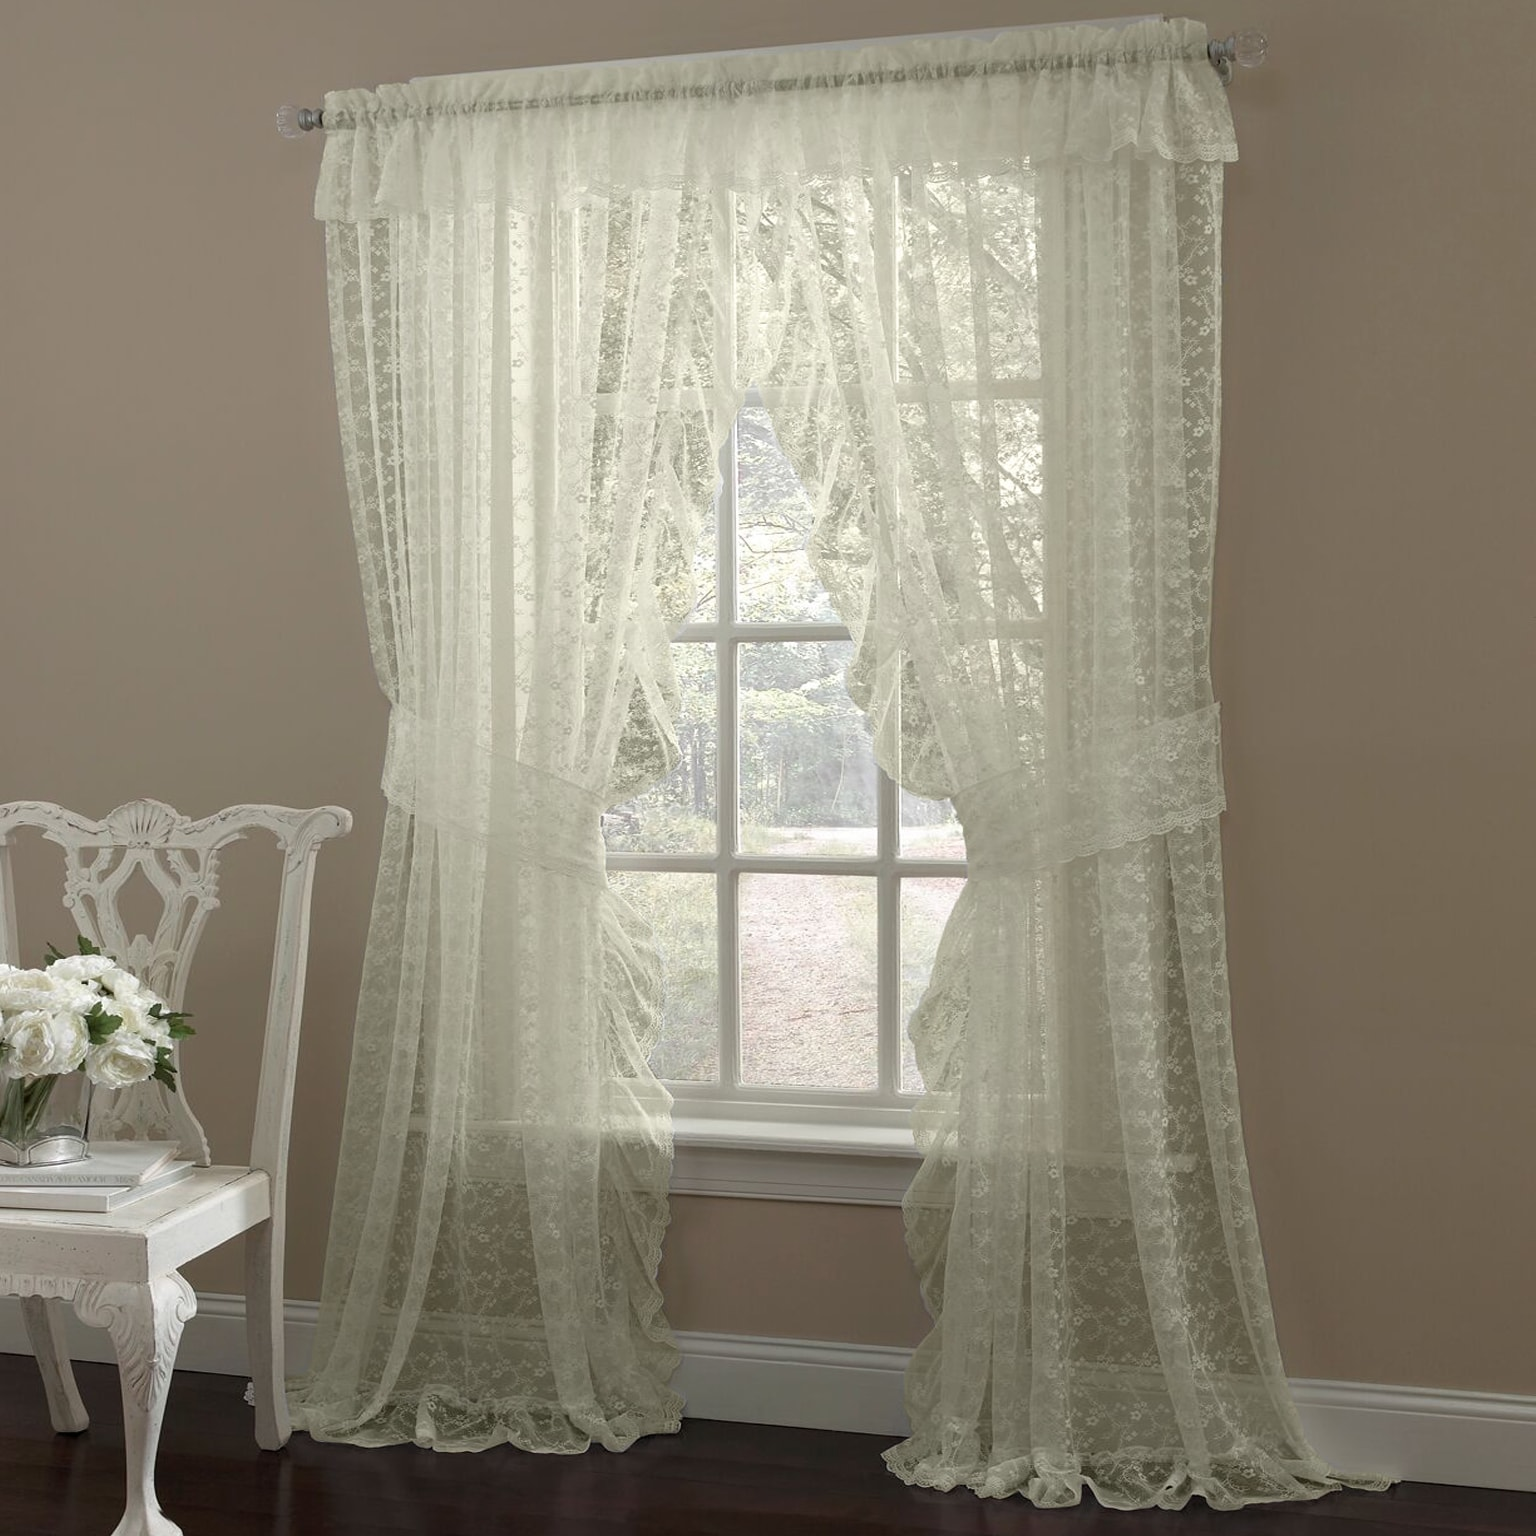 Ruffled Bridal Lace Curtain Panel Pair With Scrolling Flower Pattern On Sale Overstock 14353665